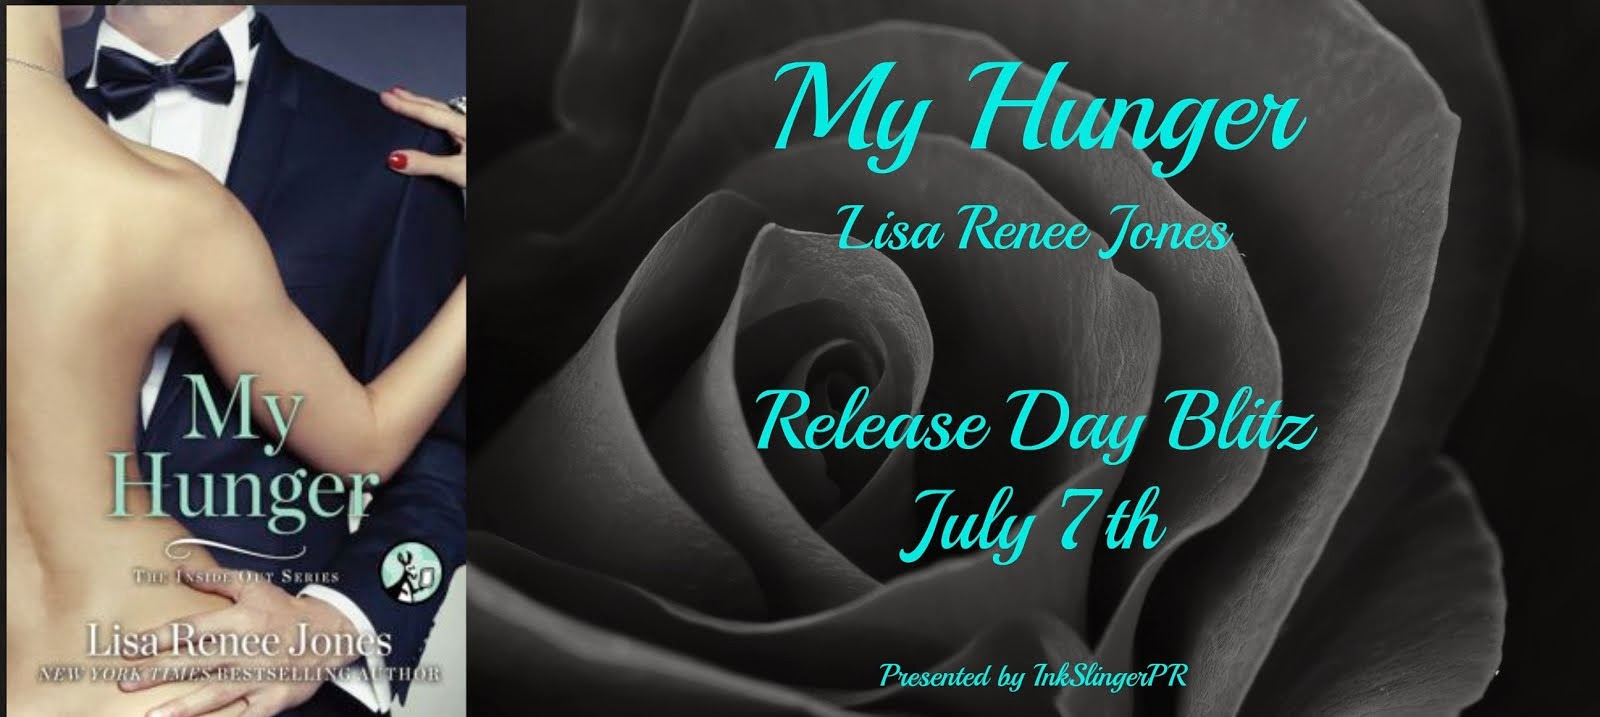 MY HUNGER Release Day Blitz & Giveaway